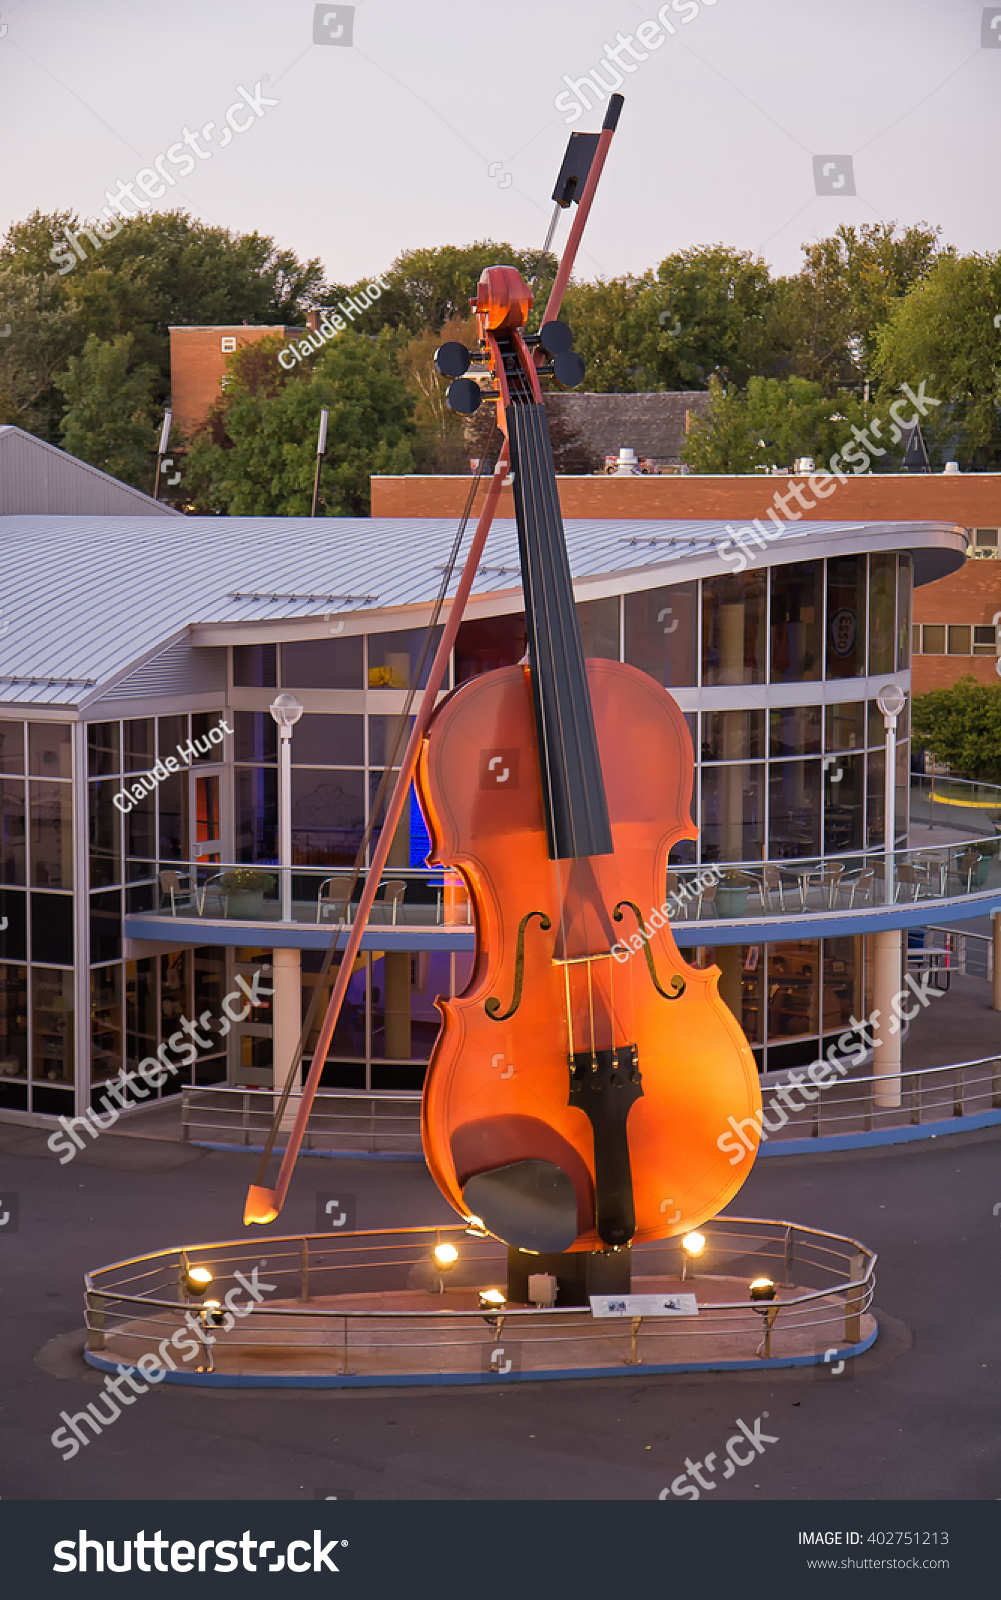 SYDNEY, NOVA SCOTIA, CANADA - SEPTEMBER 21, 2011: The Big Fiddle greets cruise ships passengers to Sydney, Nova Scotia. It is the largest fiddle in the world with a height of 60 feet/18 meters.